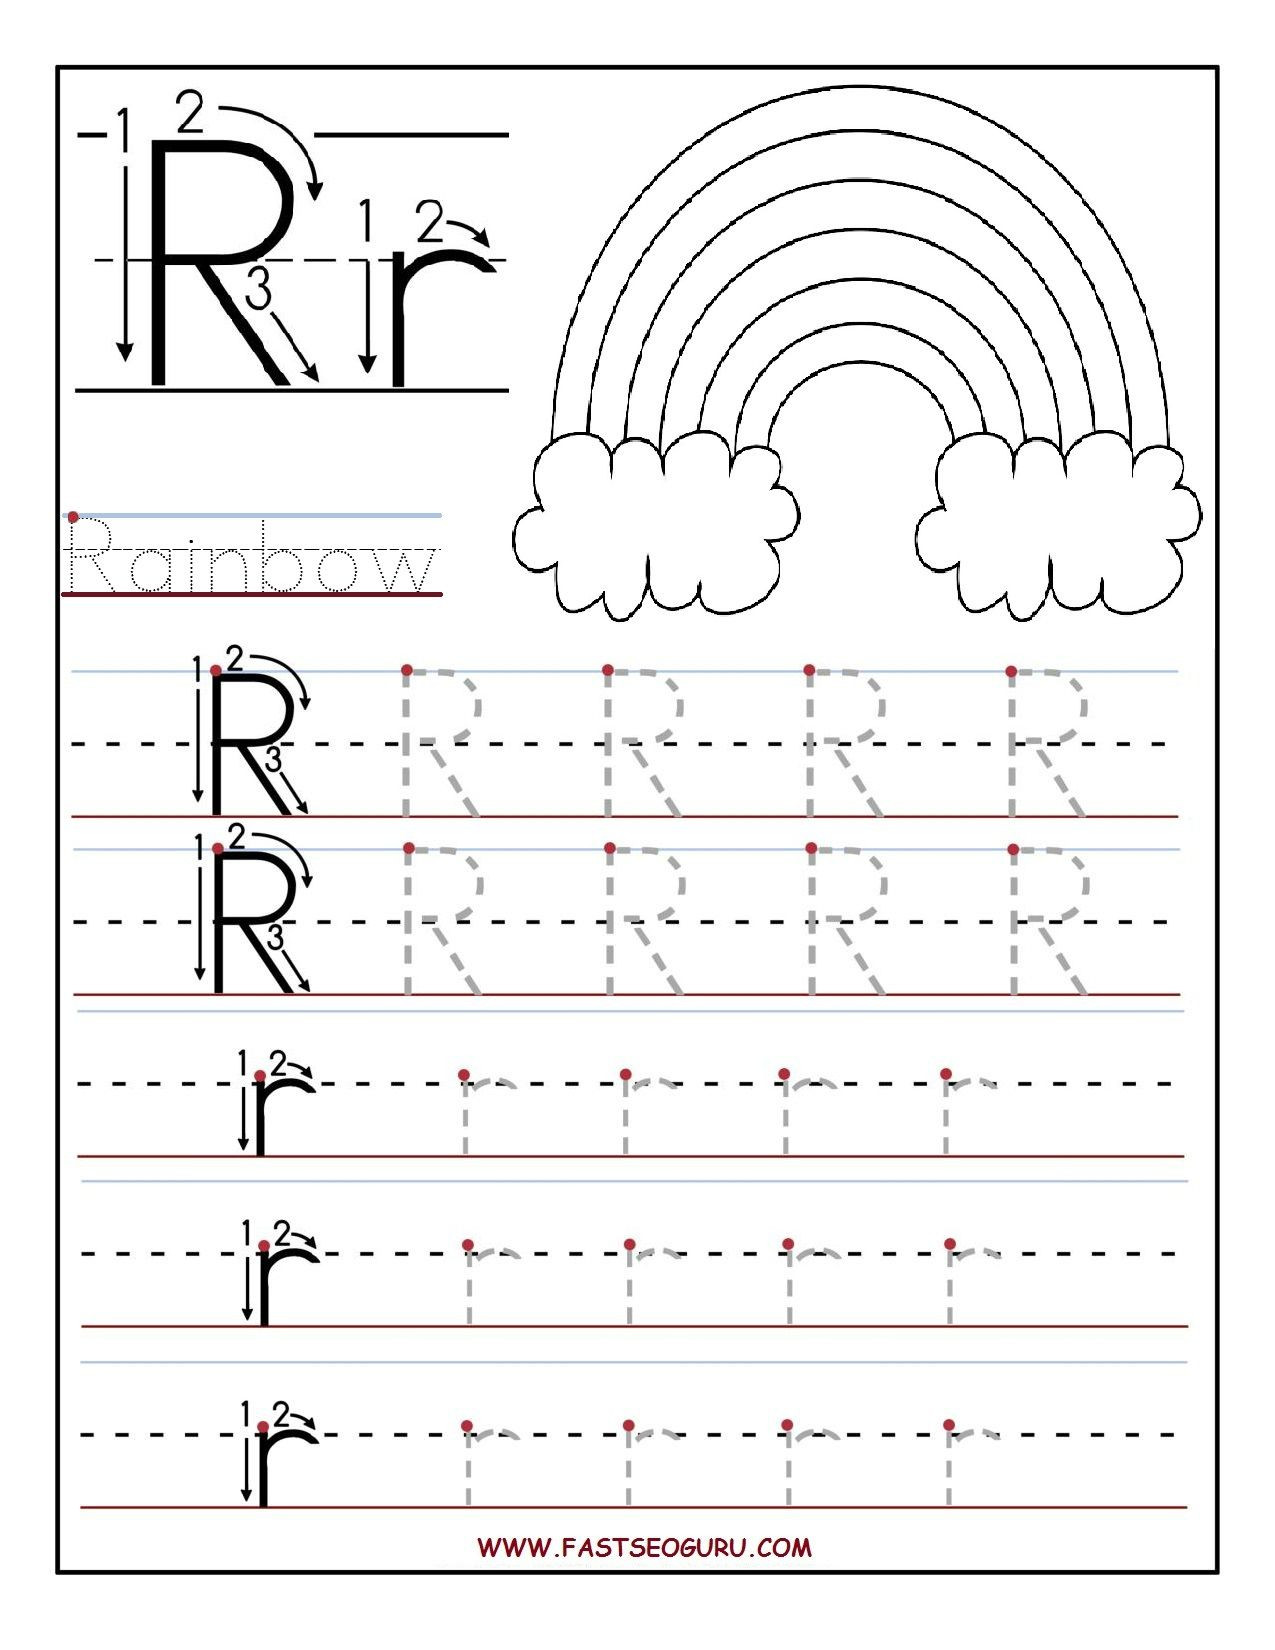 Letter R Worksheet for Kindergarten Printable Letter R Tracing Worksheets for Preschool